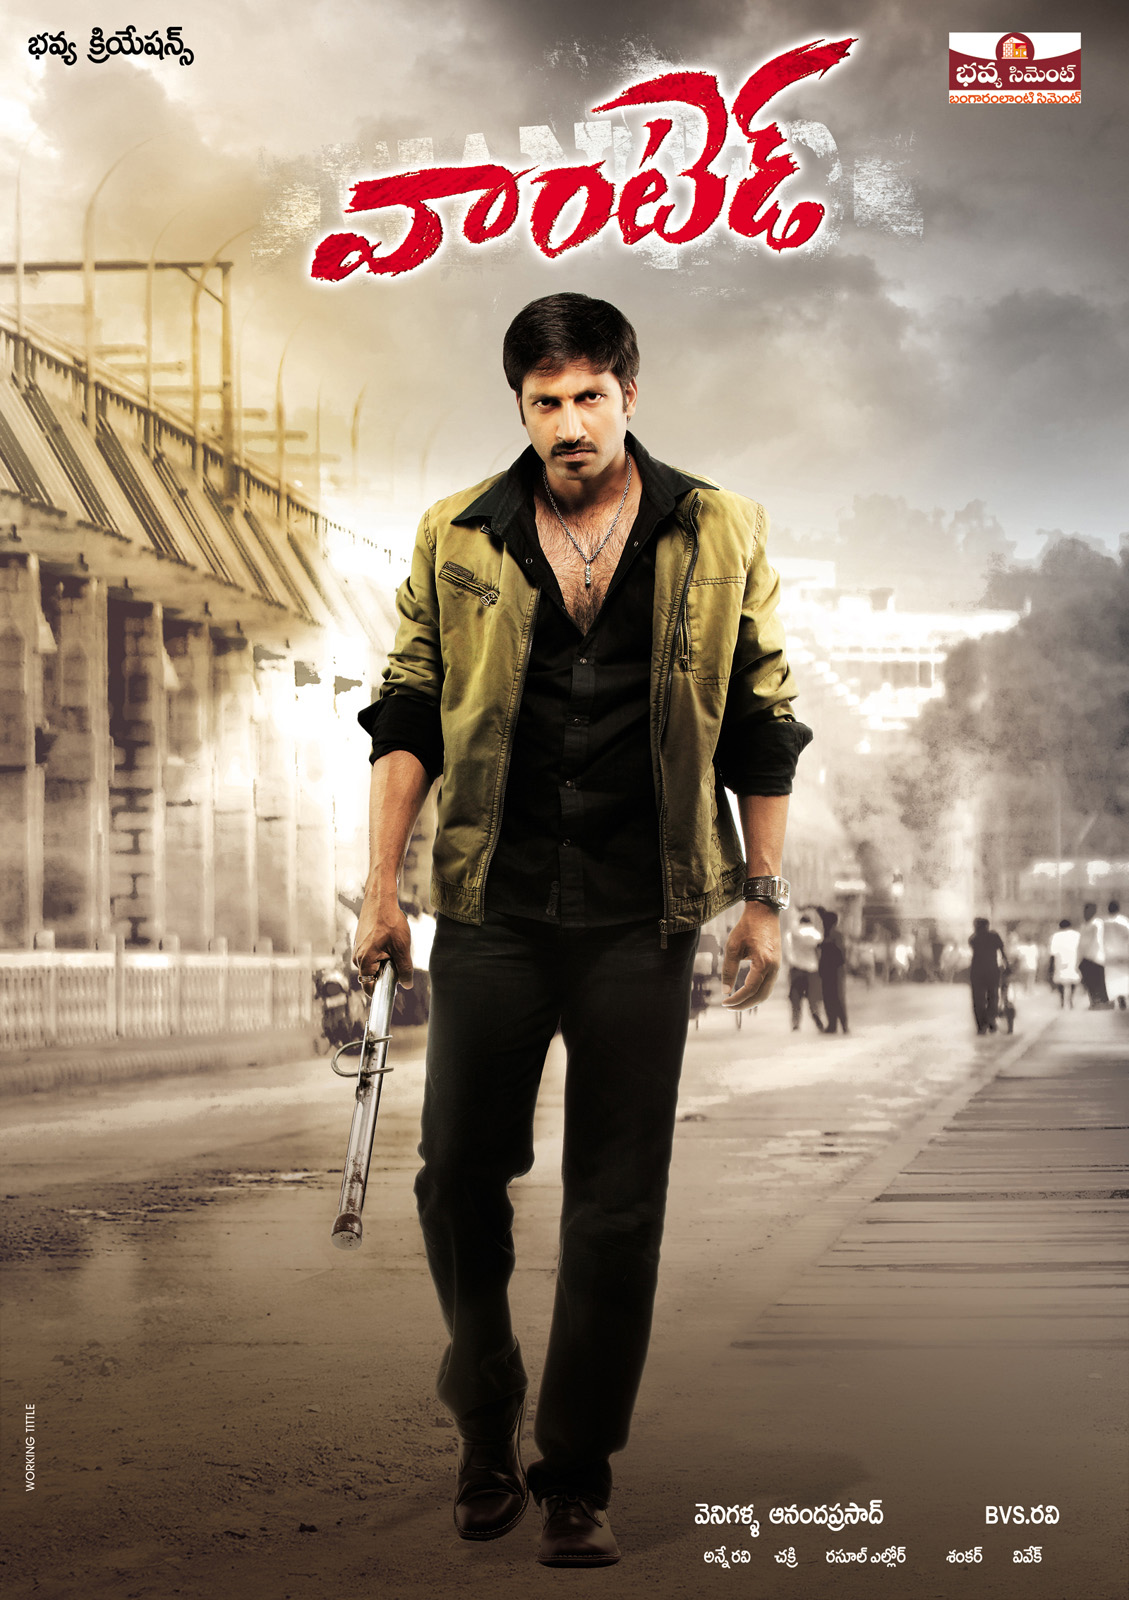 cortes de cabellos: wanted telugu movie wallpapers in high